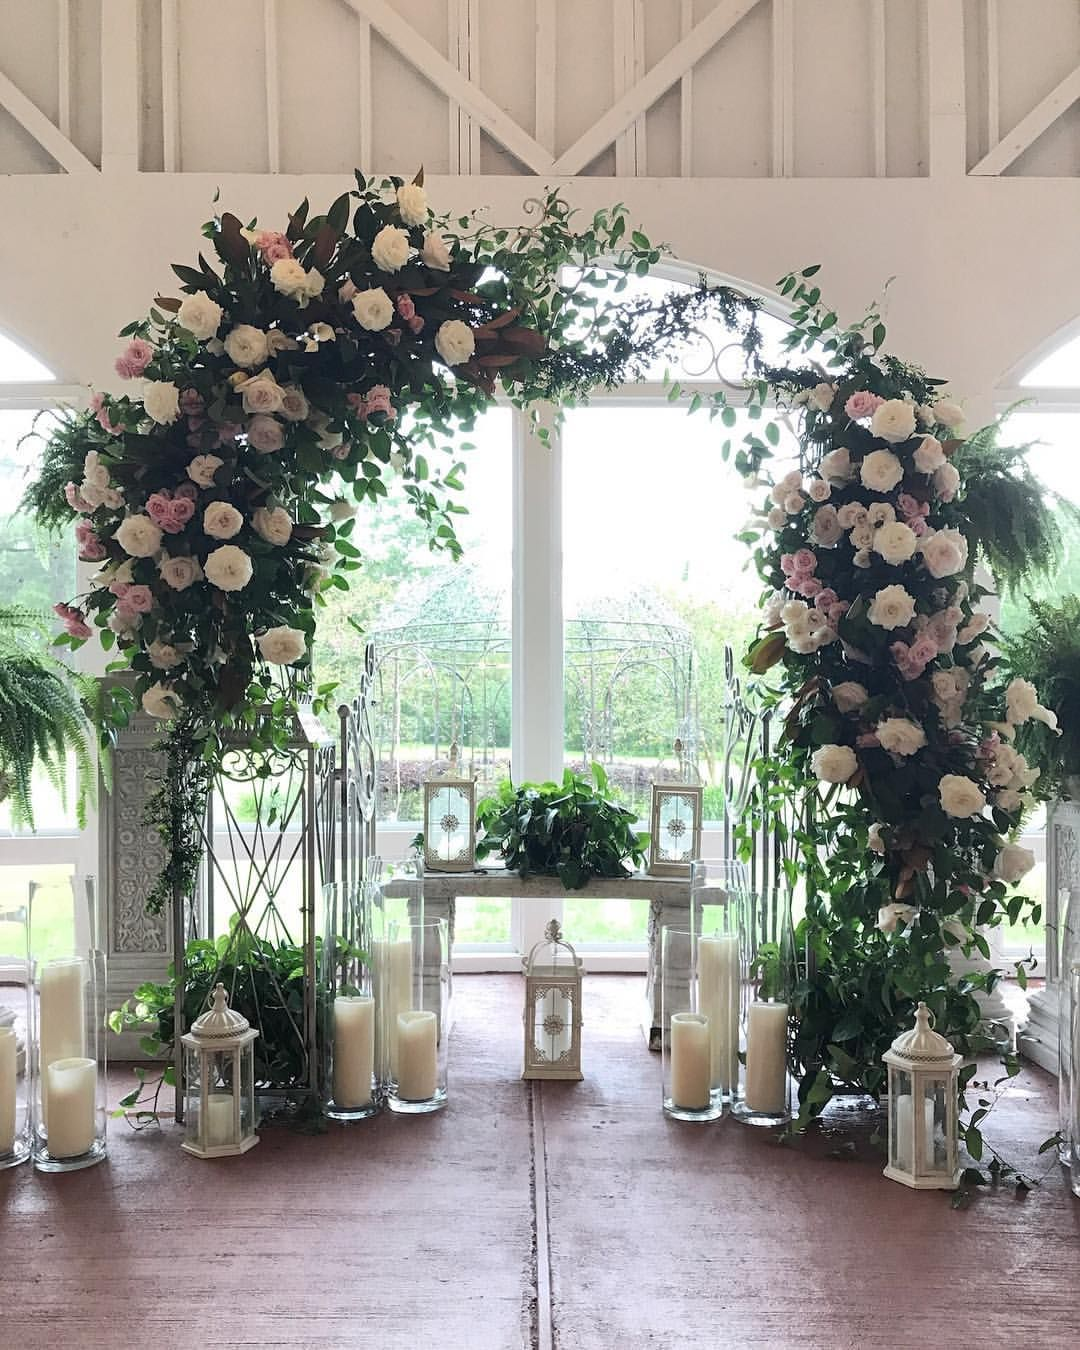 Southern Wedding Decoration Ideas: Southern Garden Style @cgtplantation #floralarch